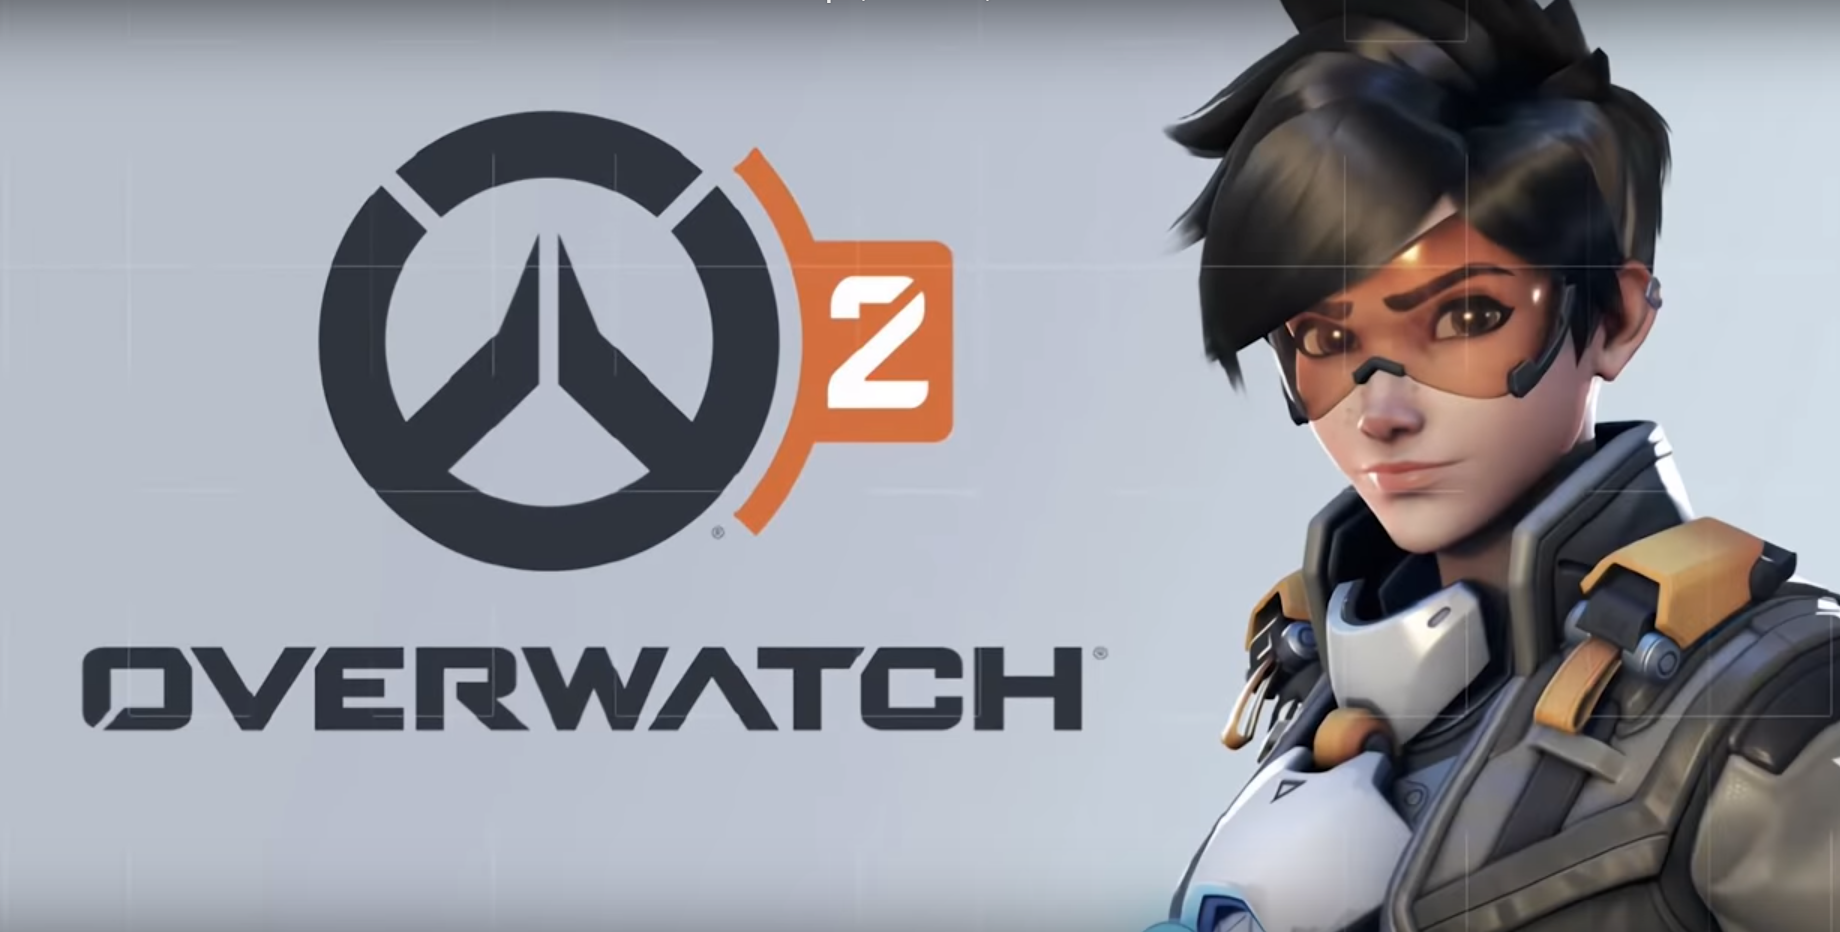 Overwatch 2 Is On Its Way Another Leak Slams Blizzard Days Before 2019 Blizzcon Fan Convention Blizzard Blizzcon Ninten Fan Convention Overwatch Blizzcon